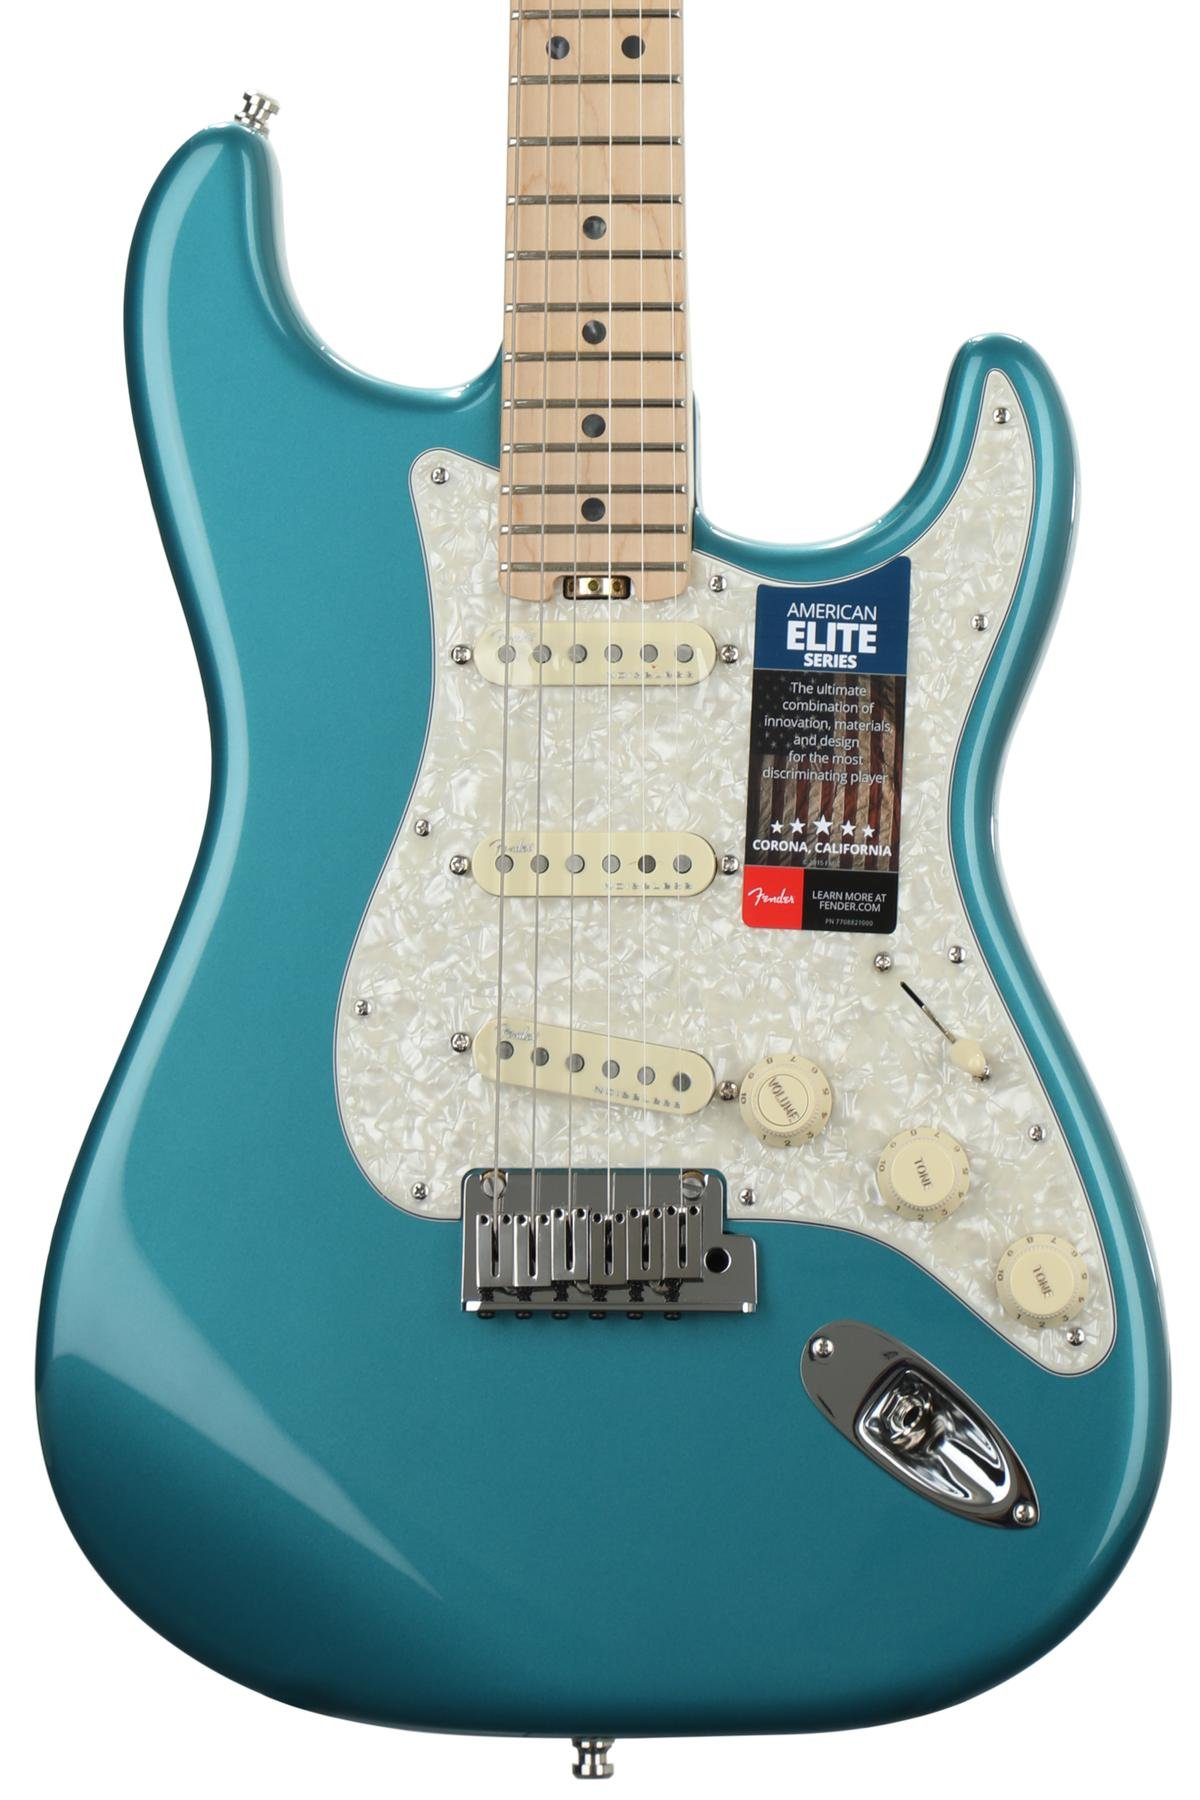 Fender American Elite Stratocaster Ocean Turquoise W Maple Telecaster 4 Way Wiring Fingerboard Image 1